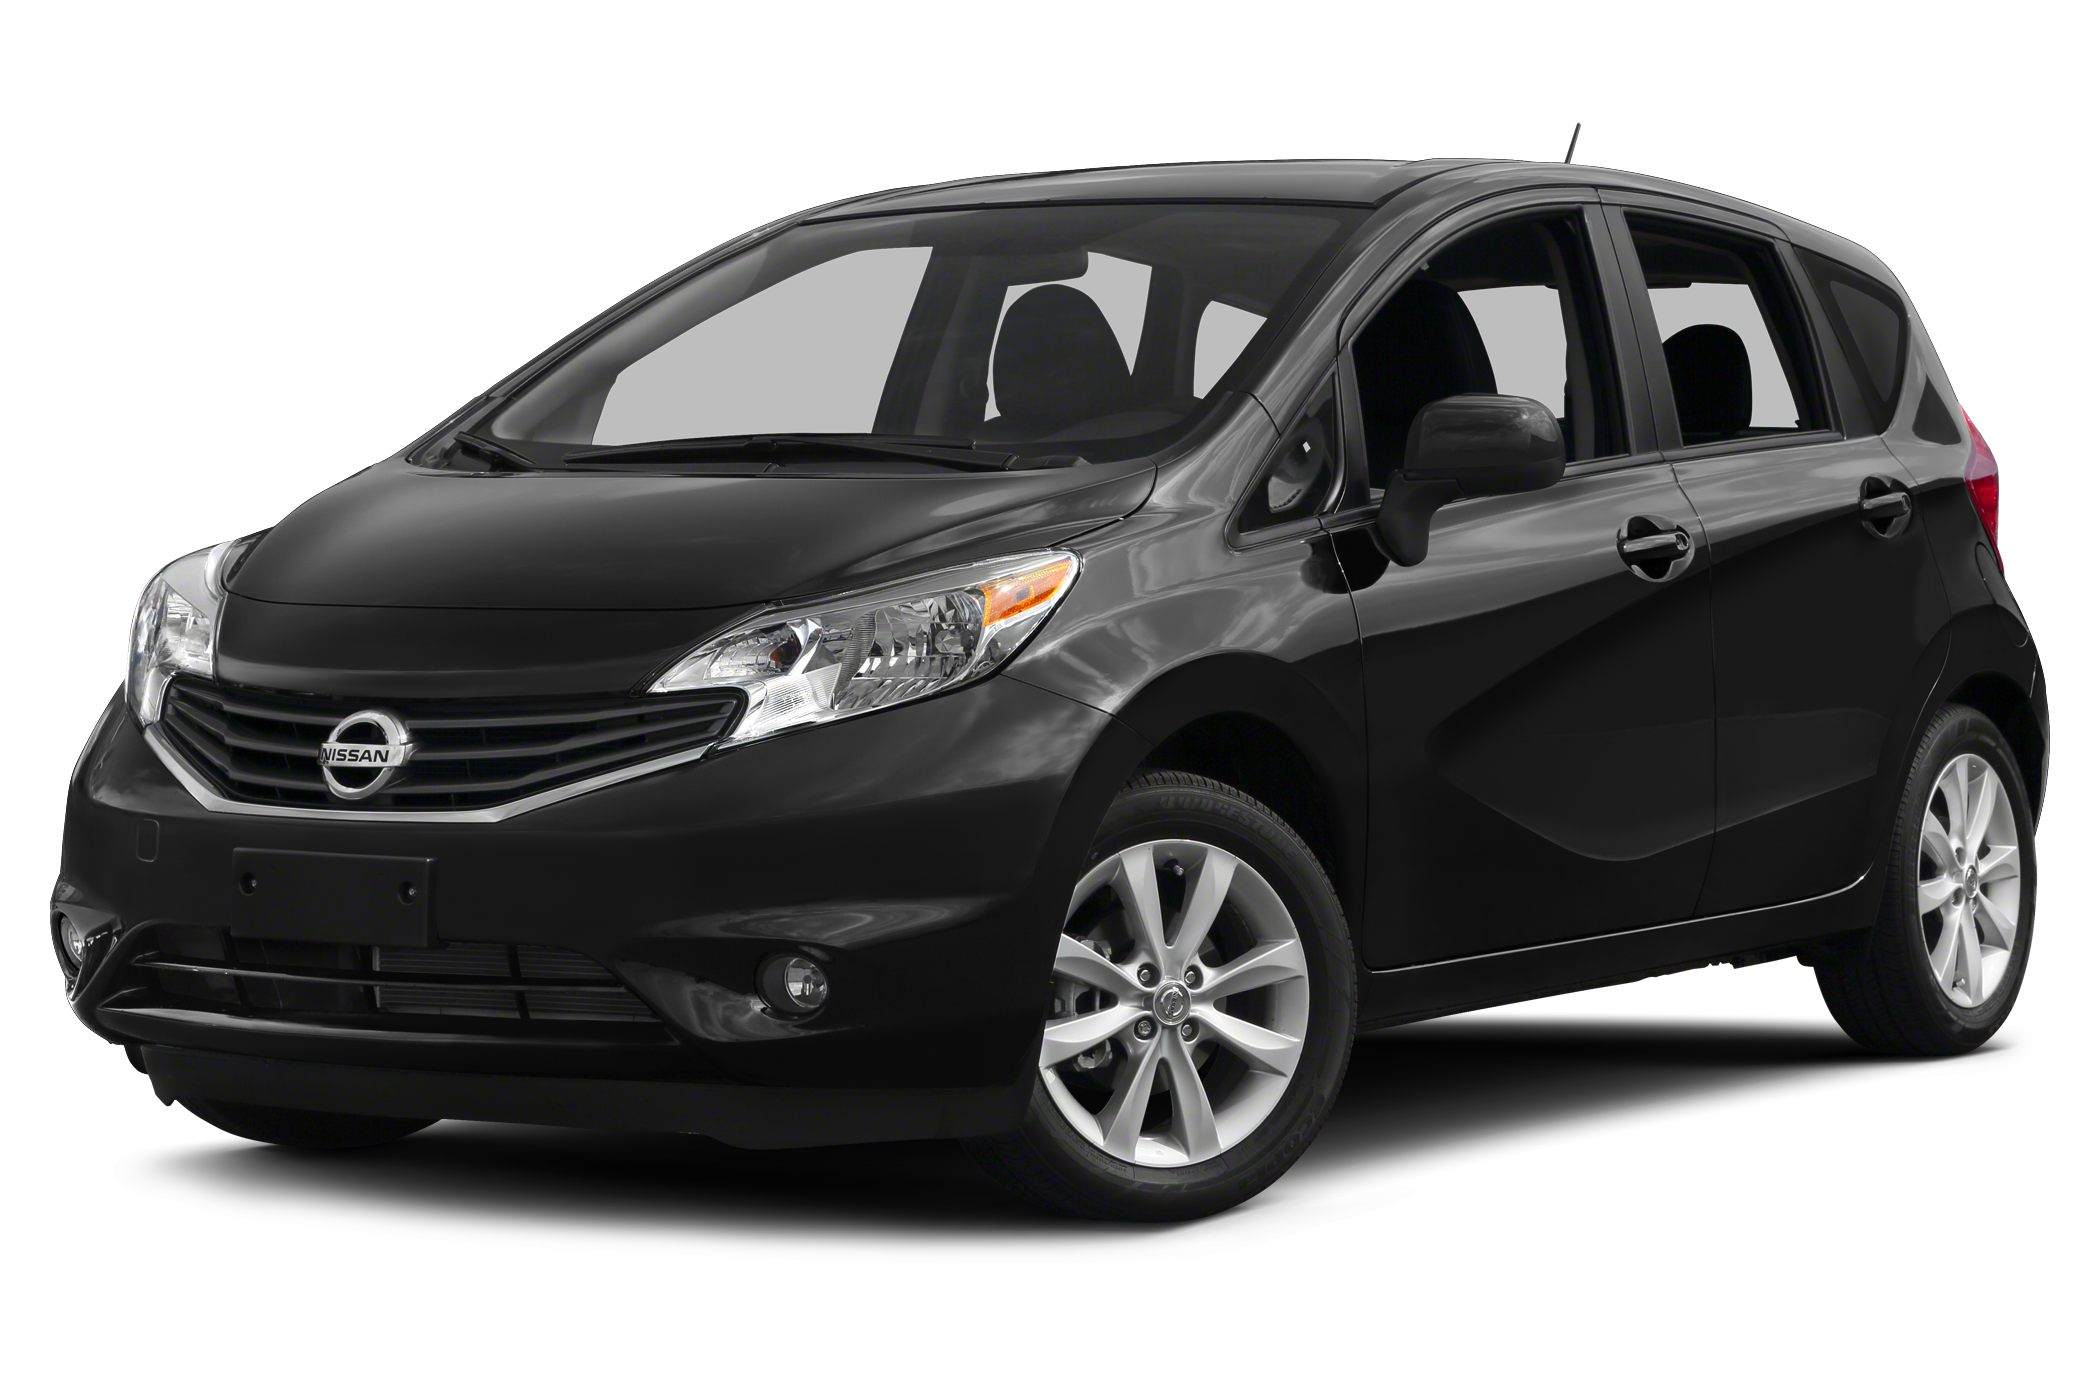 2015 Nissan Versa Note S Plus Vehicle Options ABS Brakes Front Heated Seat Side Head Curtain Airba